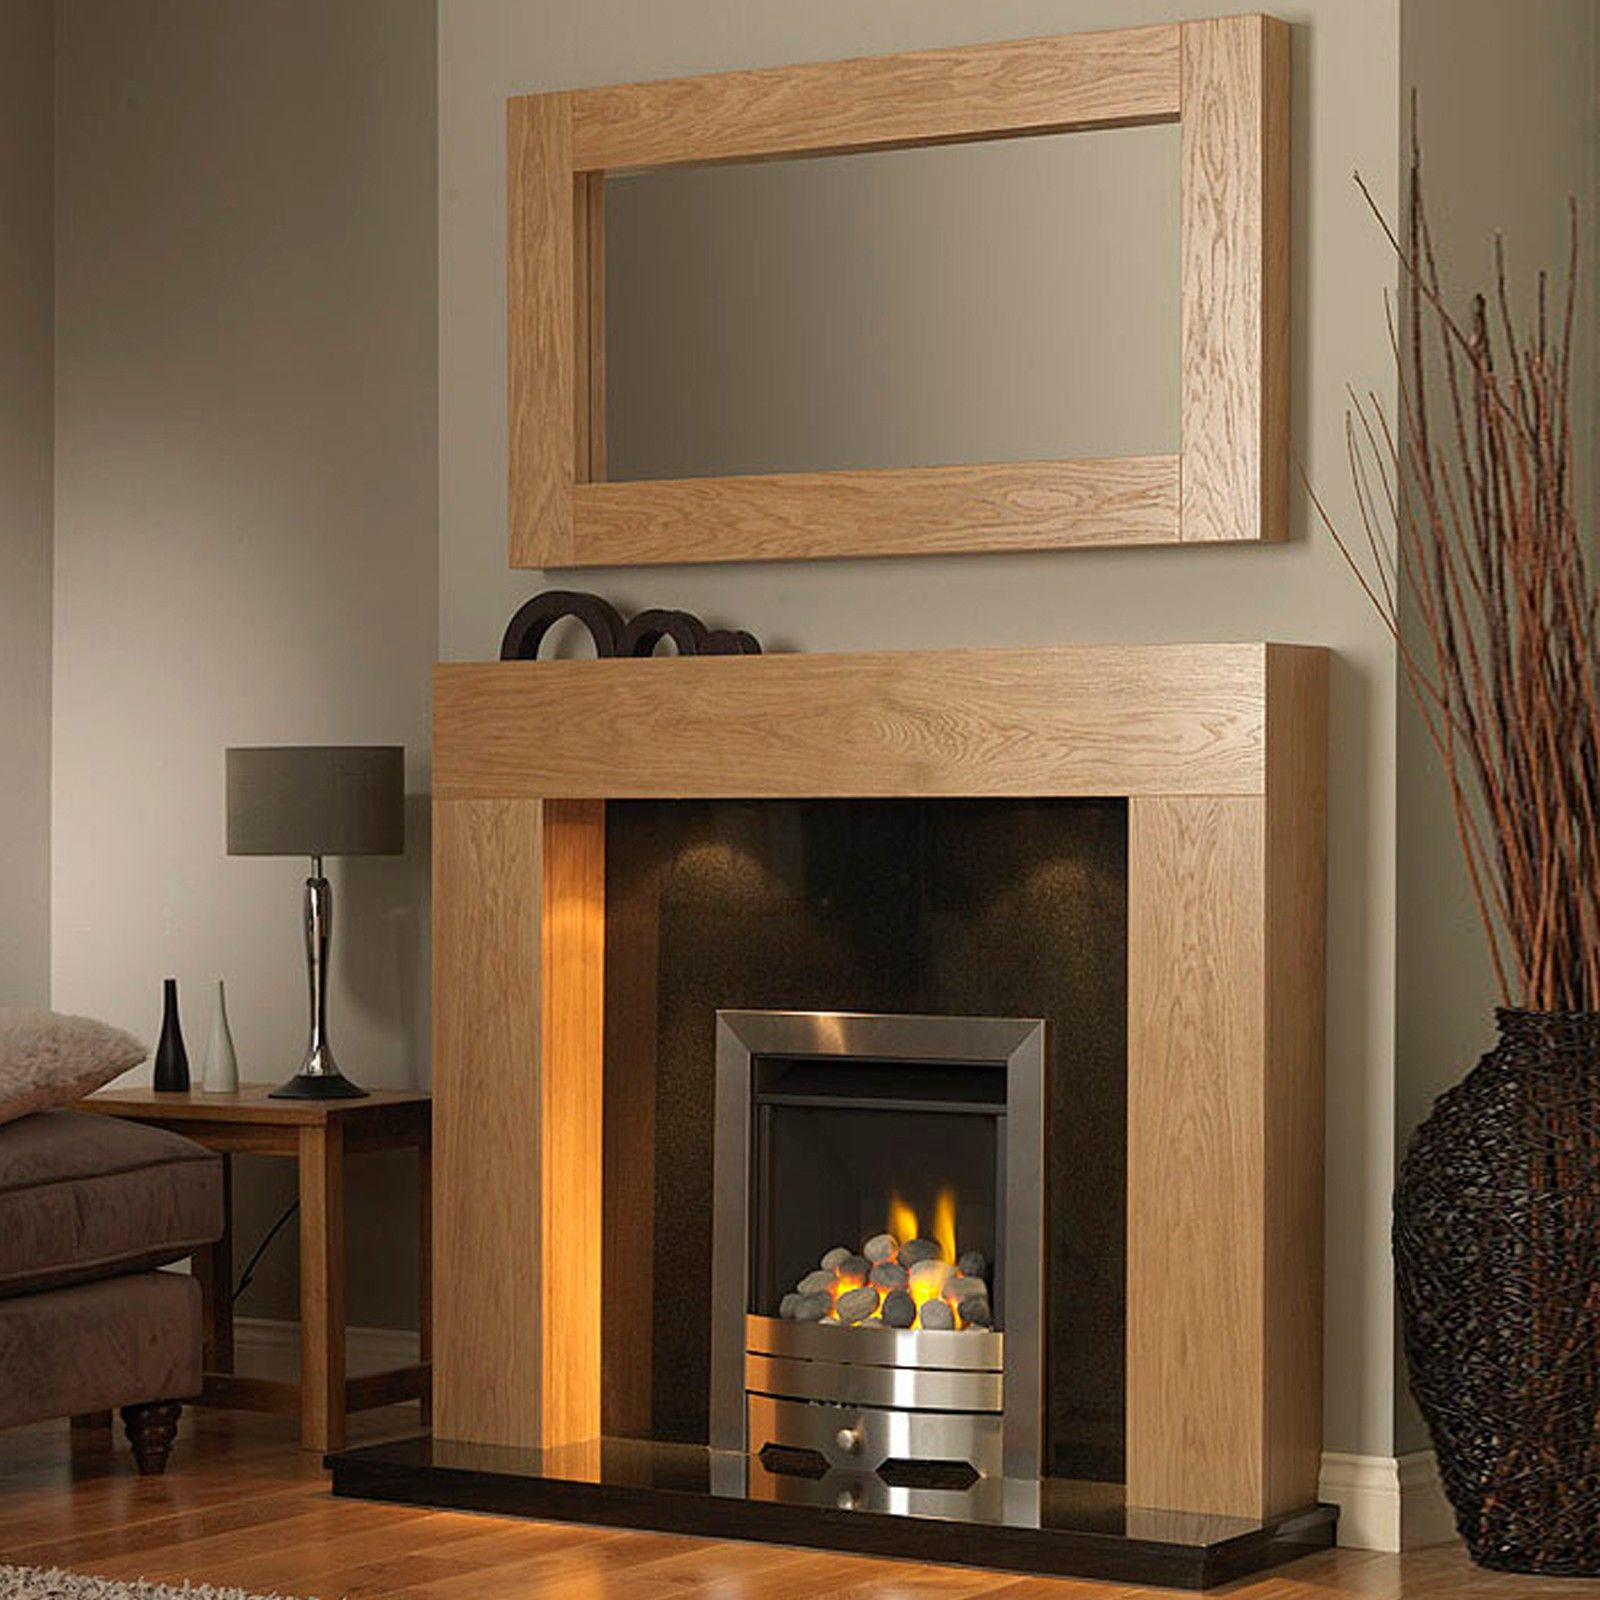 Mantels and Modern fireplaces